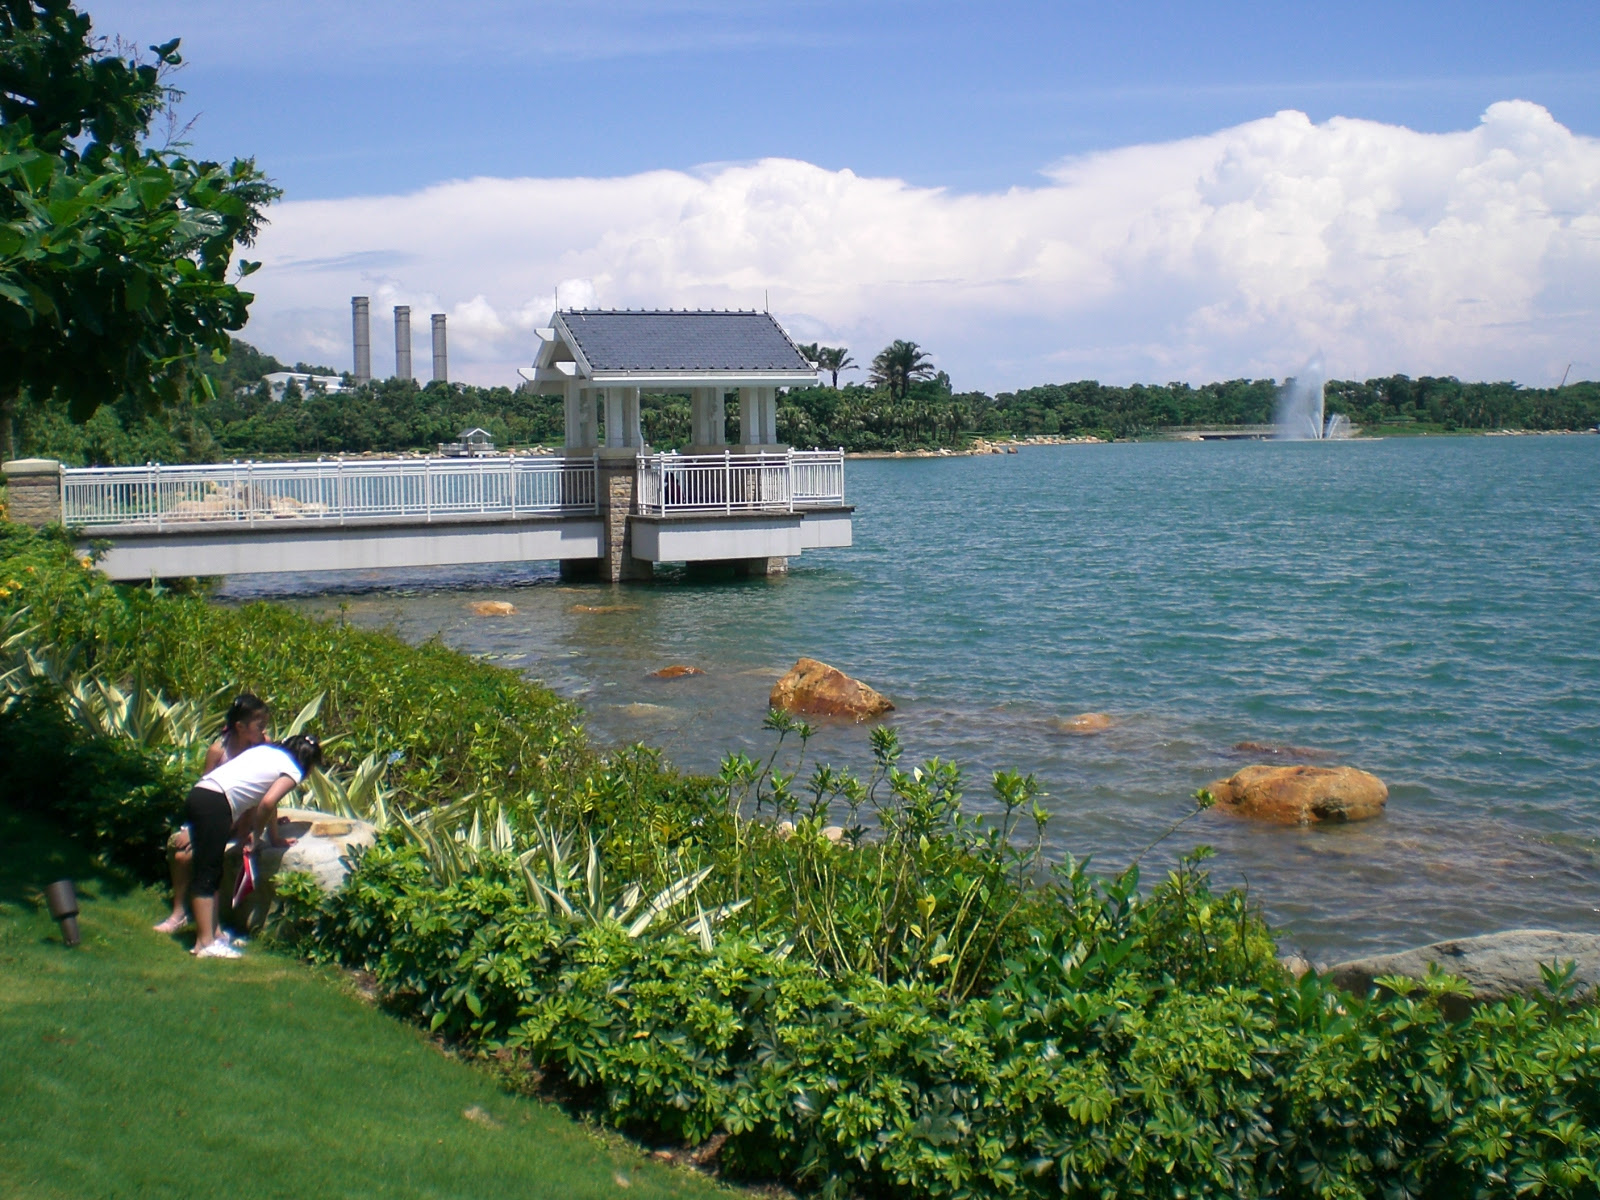 Inspiration Lake Hong Kong Location Map,Location Map of Inspiration Lake Hong Kong,Inspiration Lake Hong Kong accommodation destinations attractions hotels map reviews photos pictures